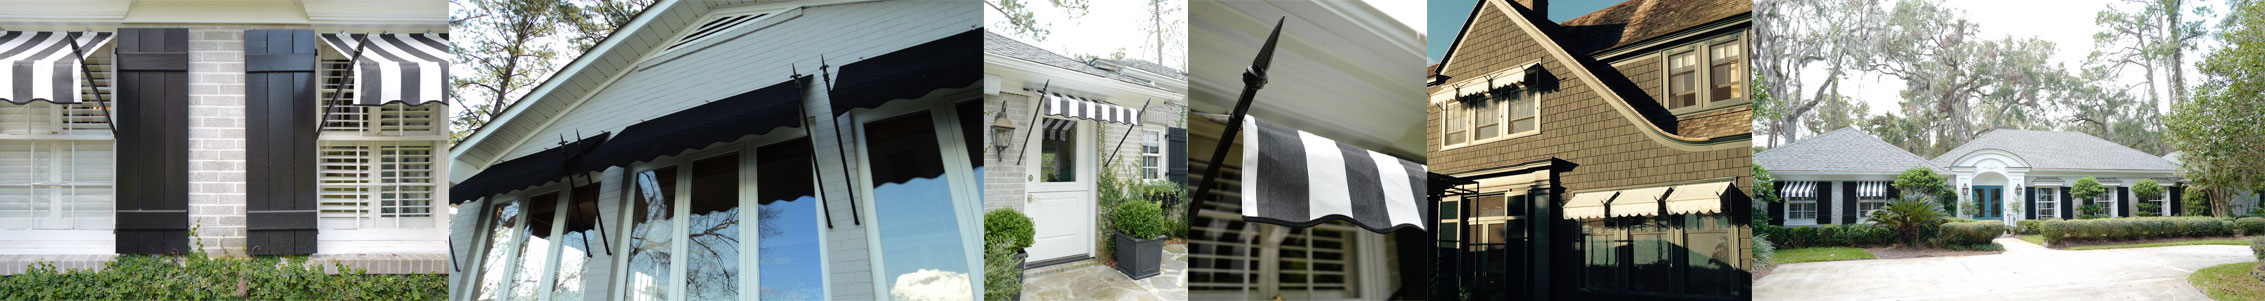 Spear-Awnings